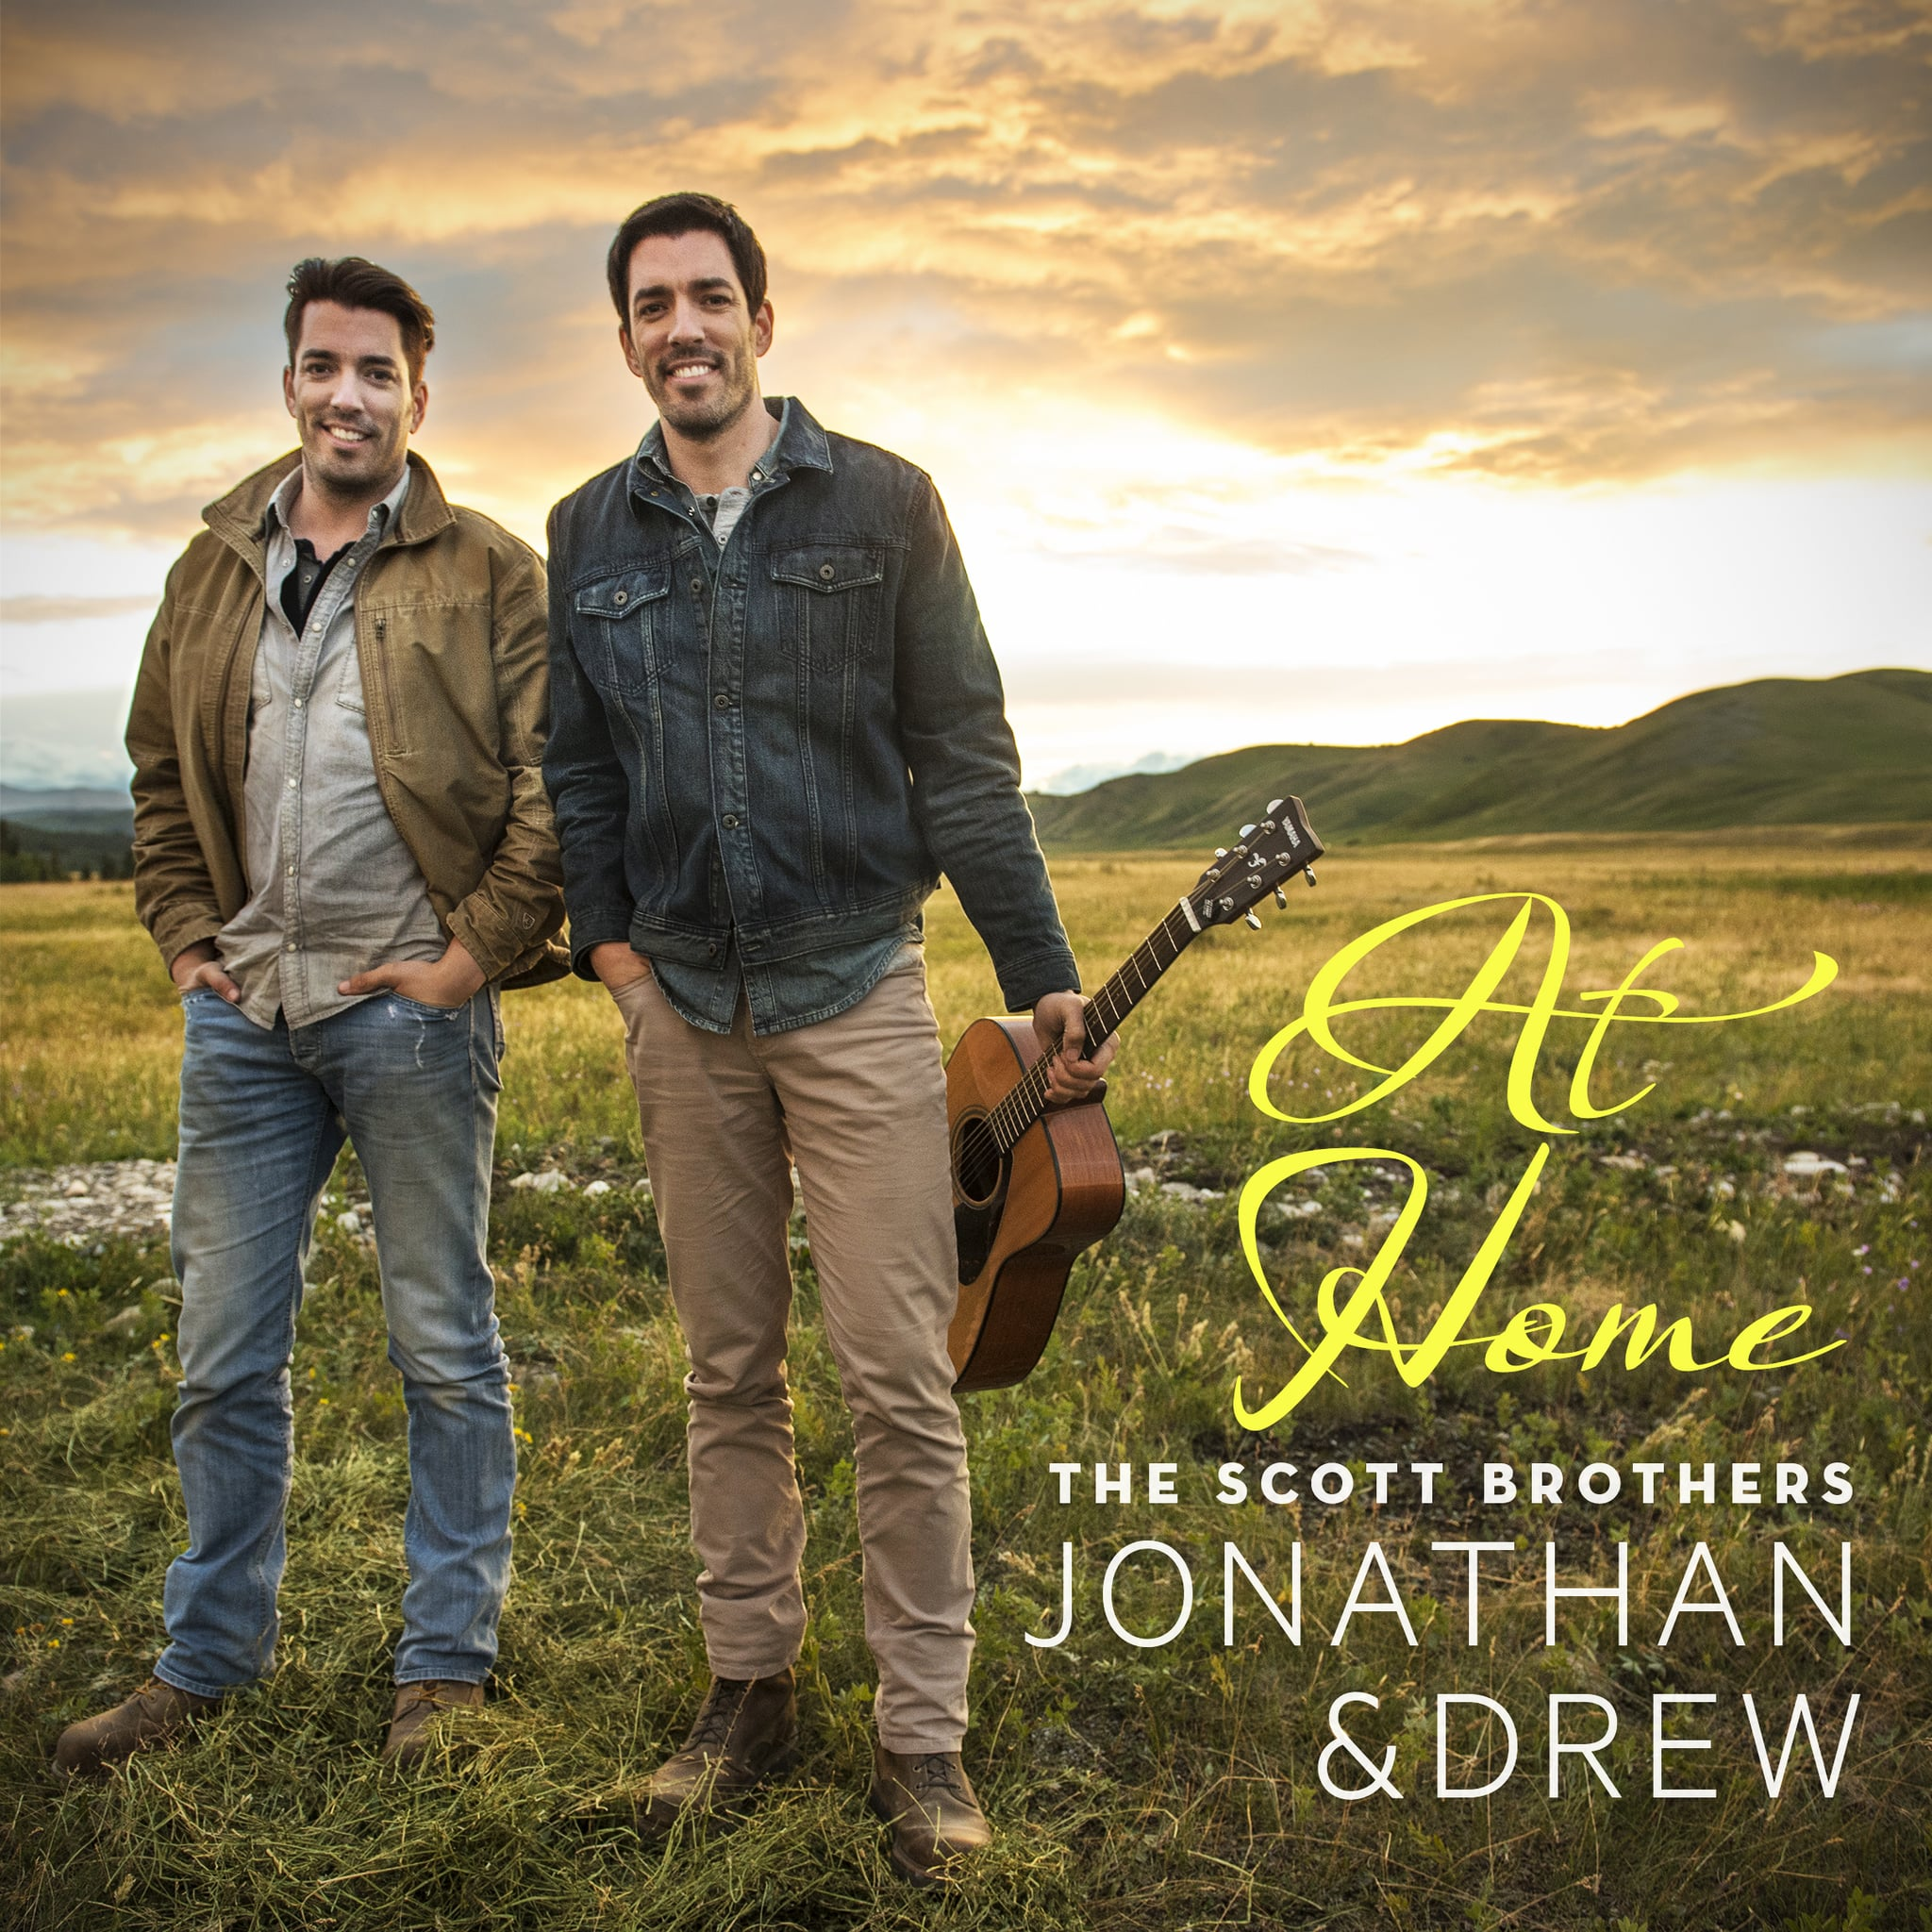 Property Brothers: The Property Brothers' Album